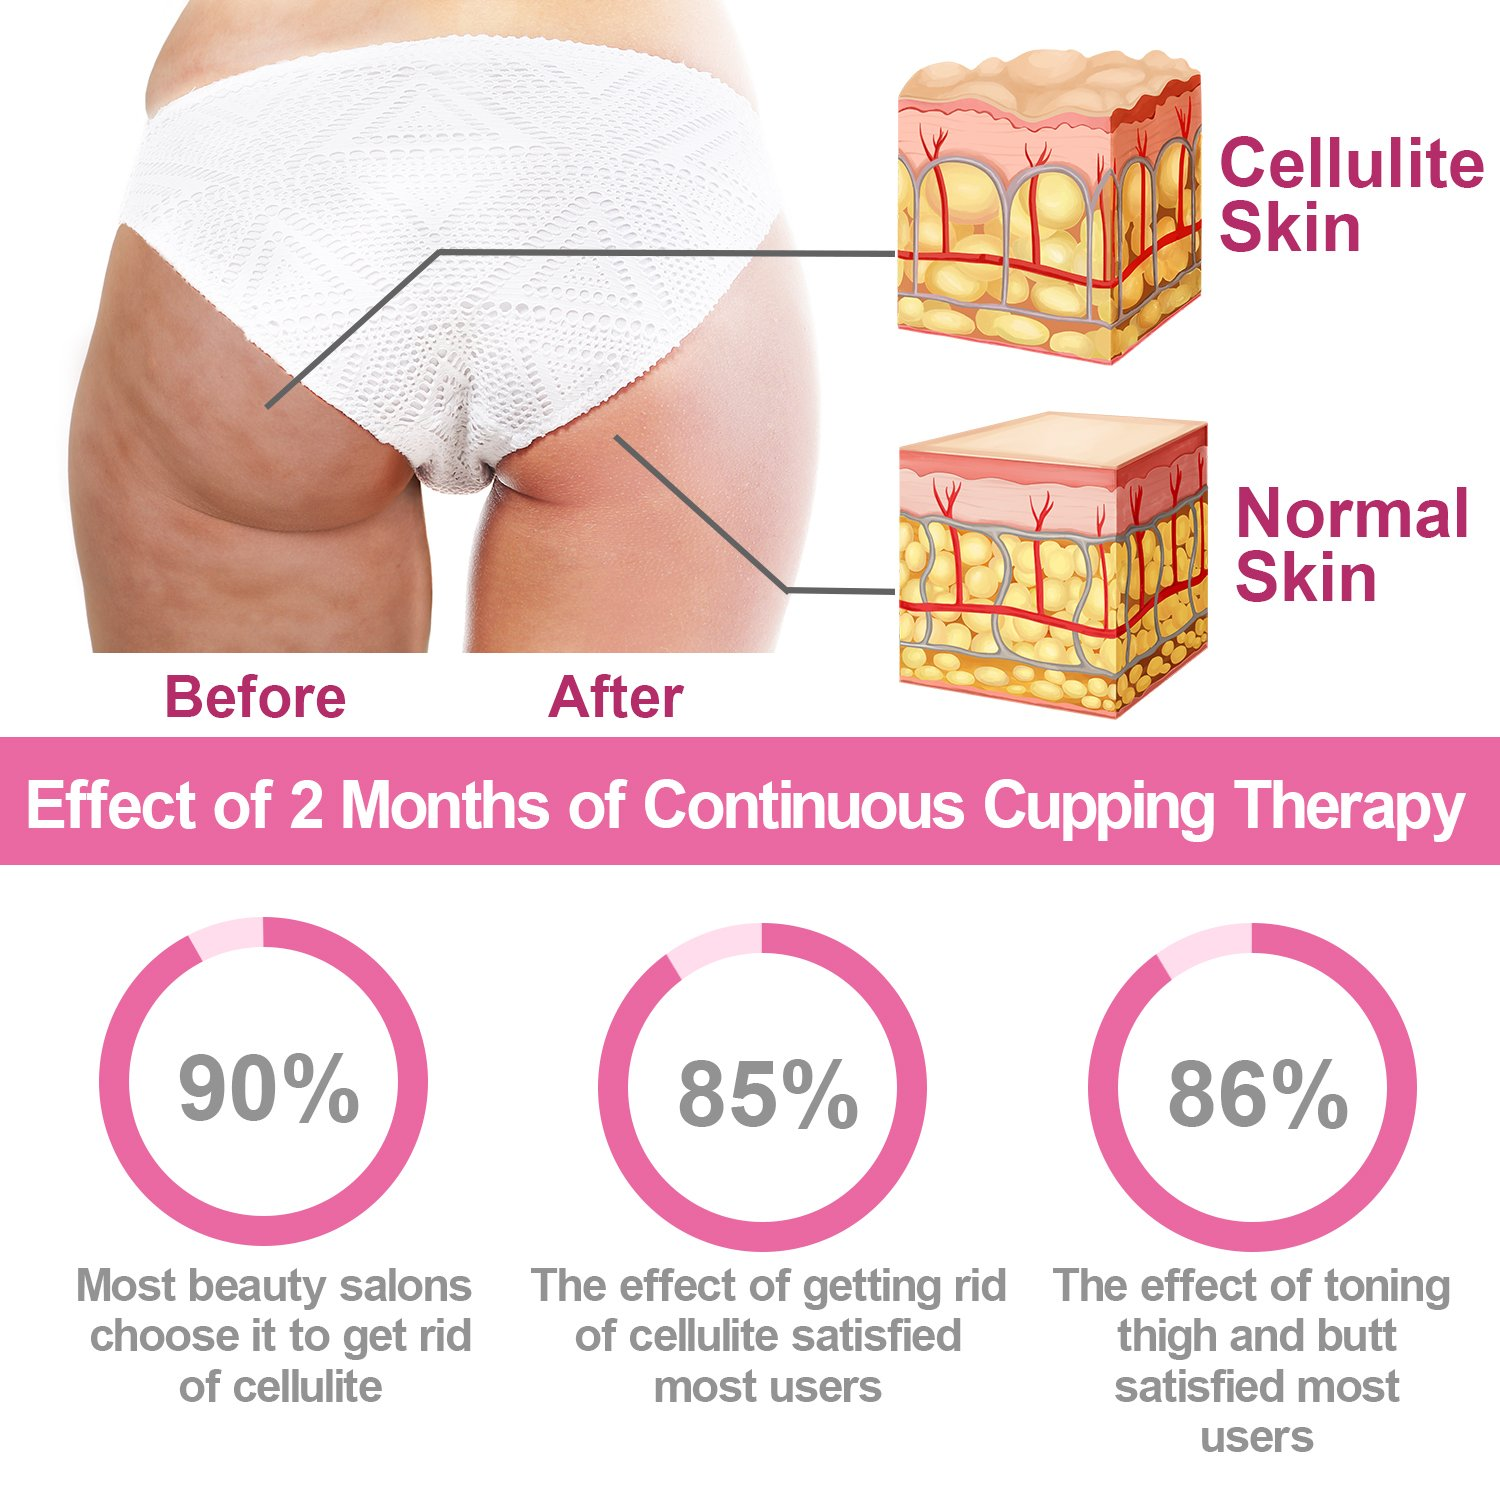 How to get rid of cellulite - instructions for lazy